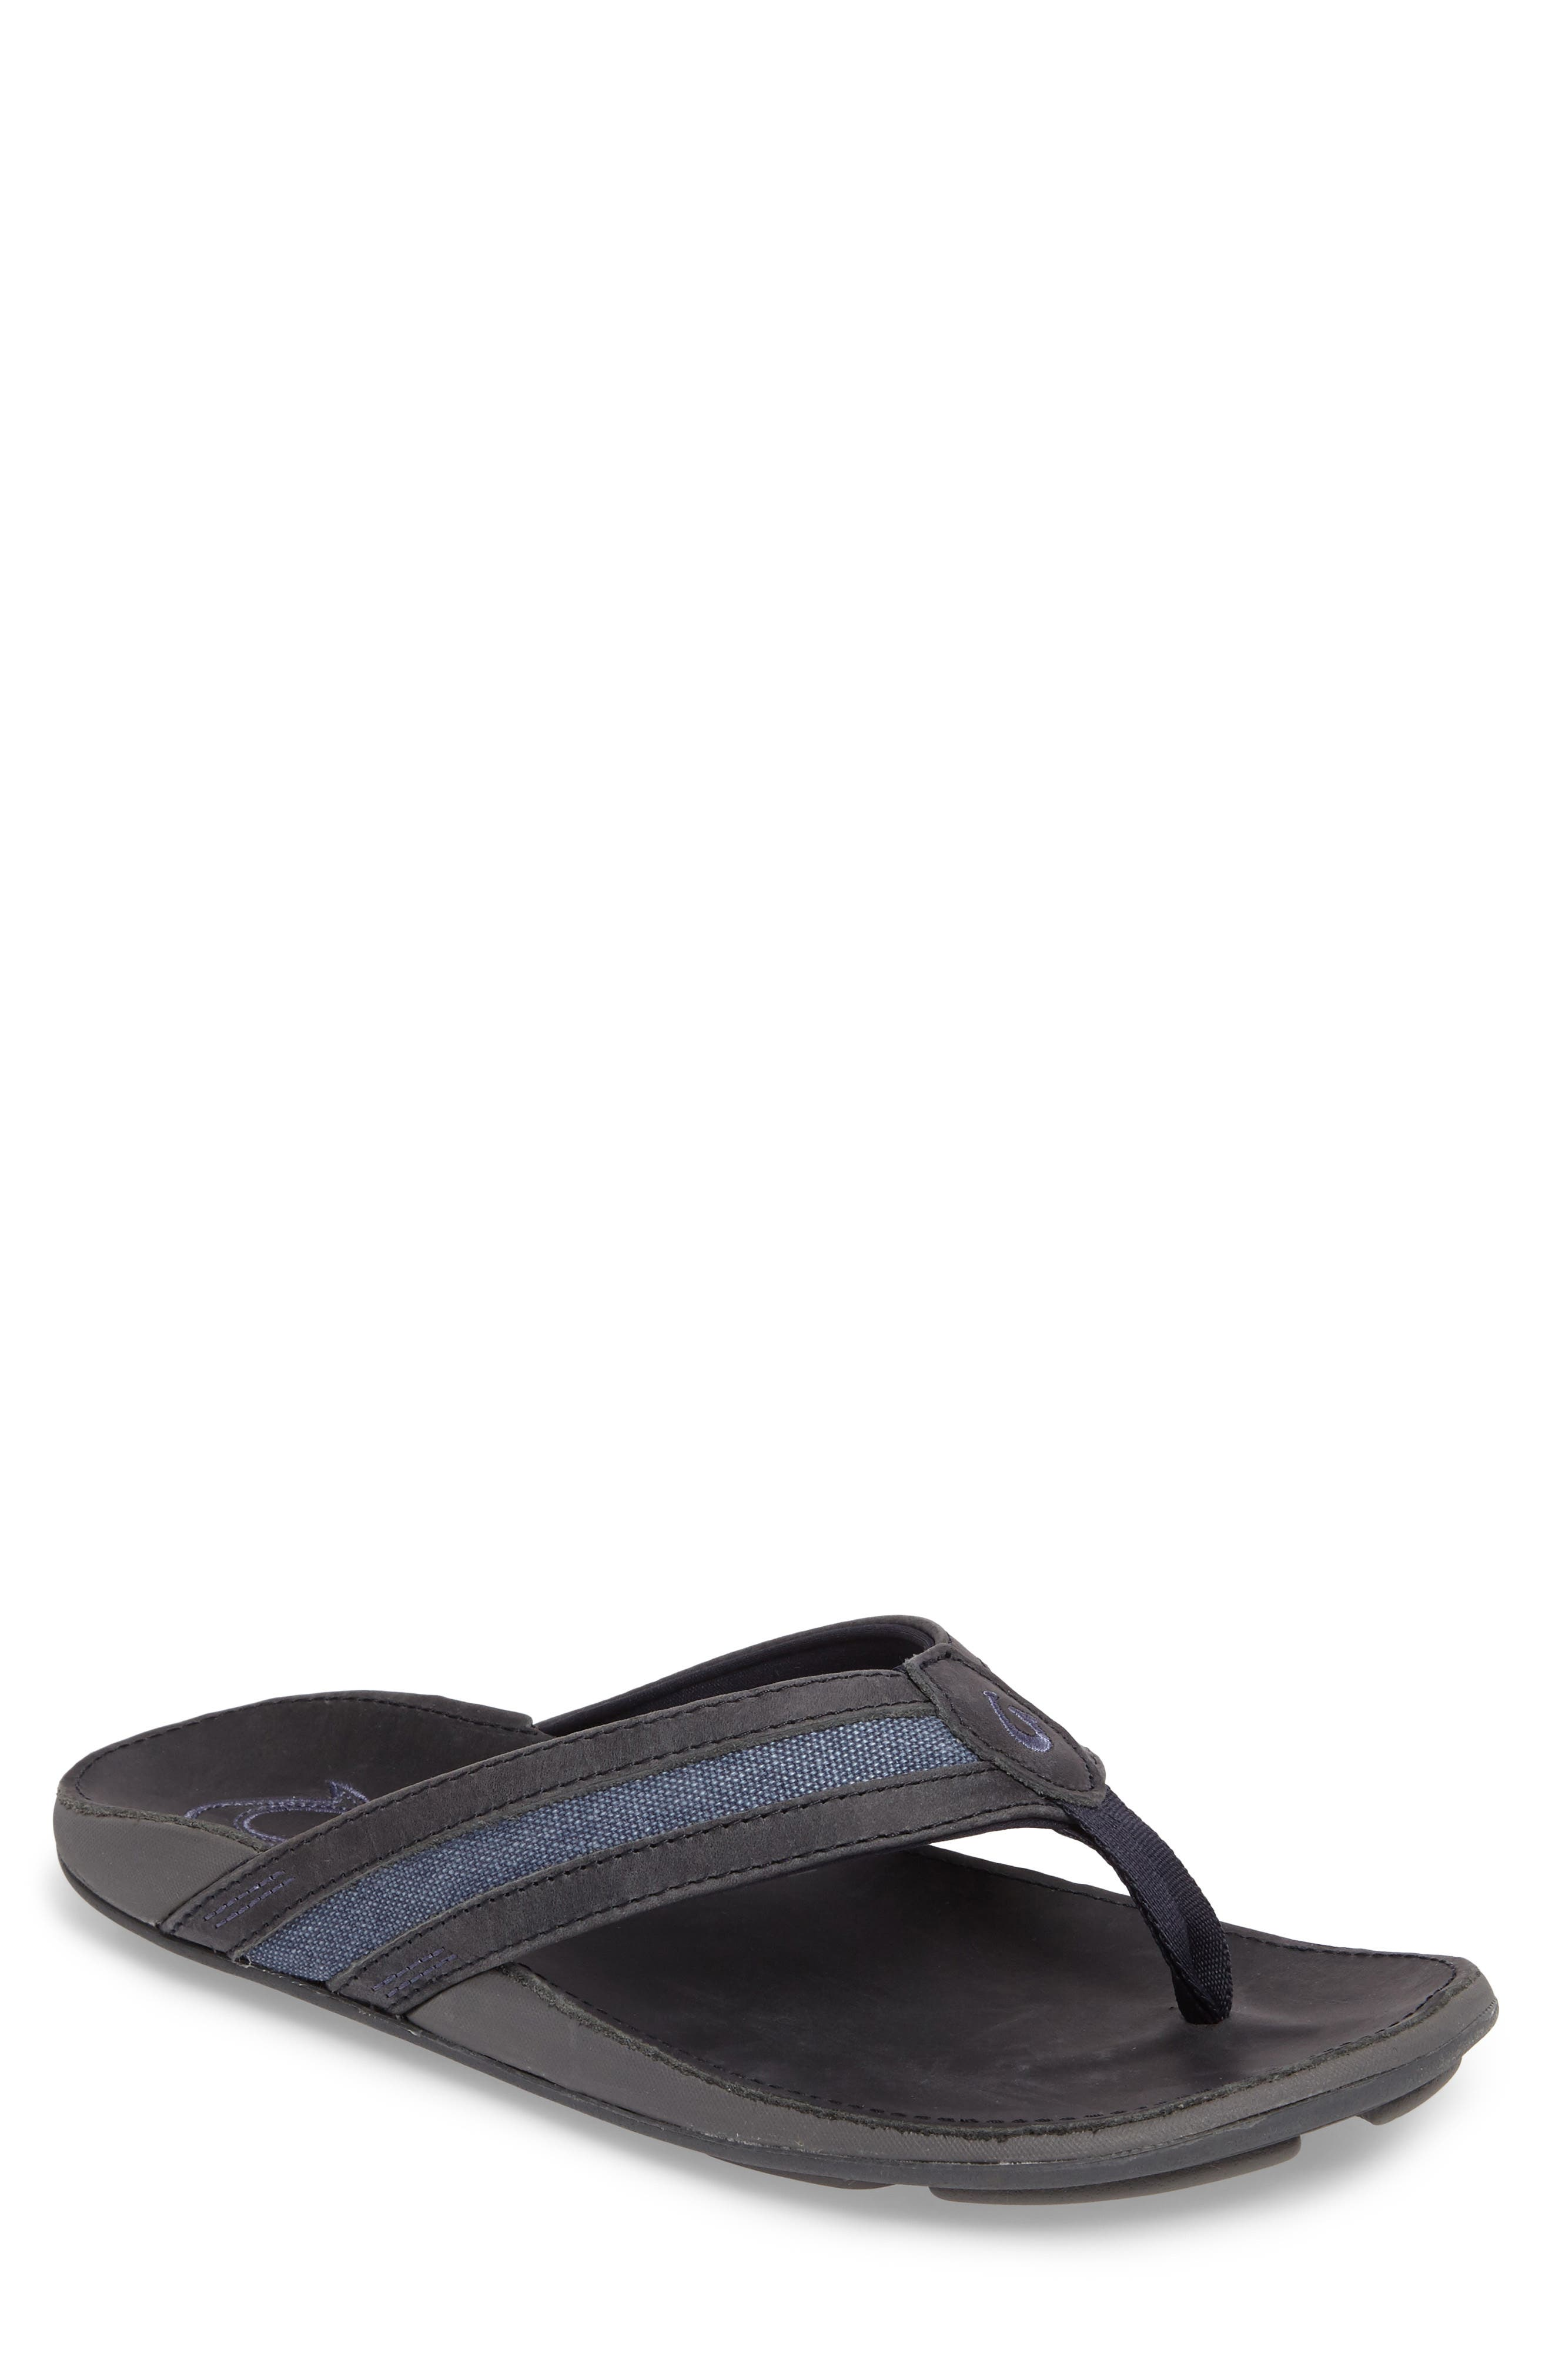 Ikoi Flip Flop,                             Main thumbnail 1, color,                             Trench Blue Leather